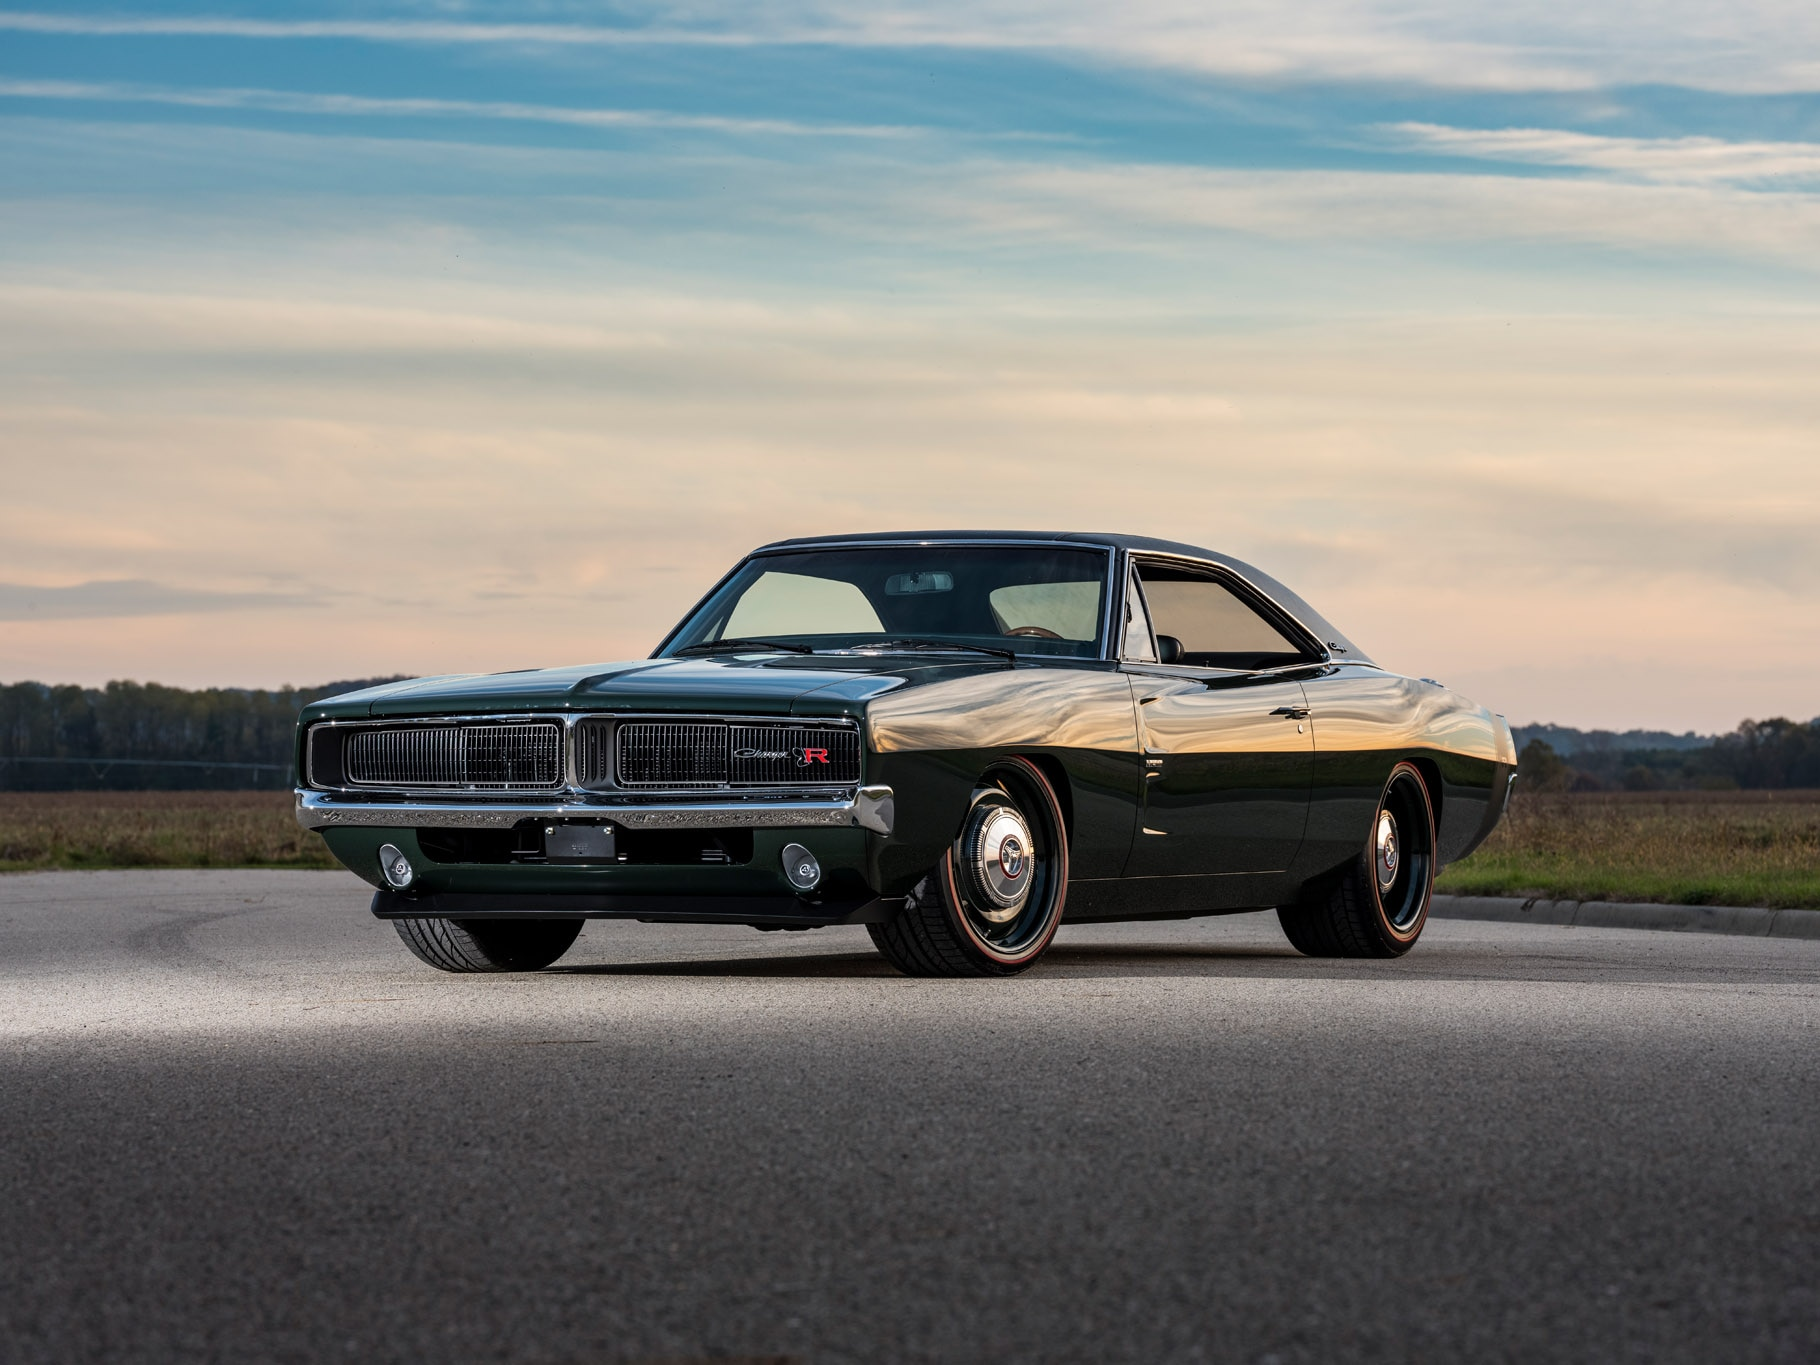 Dodge Muscle Car Wallpapers Ringbrothers 1969 Dodge Charger Restomod Is An Exercise In